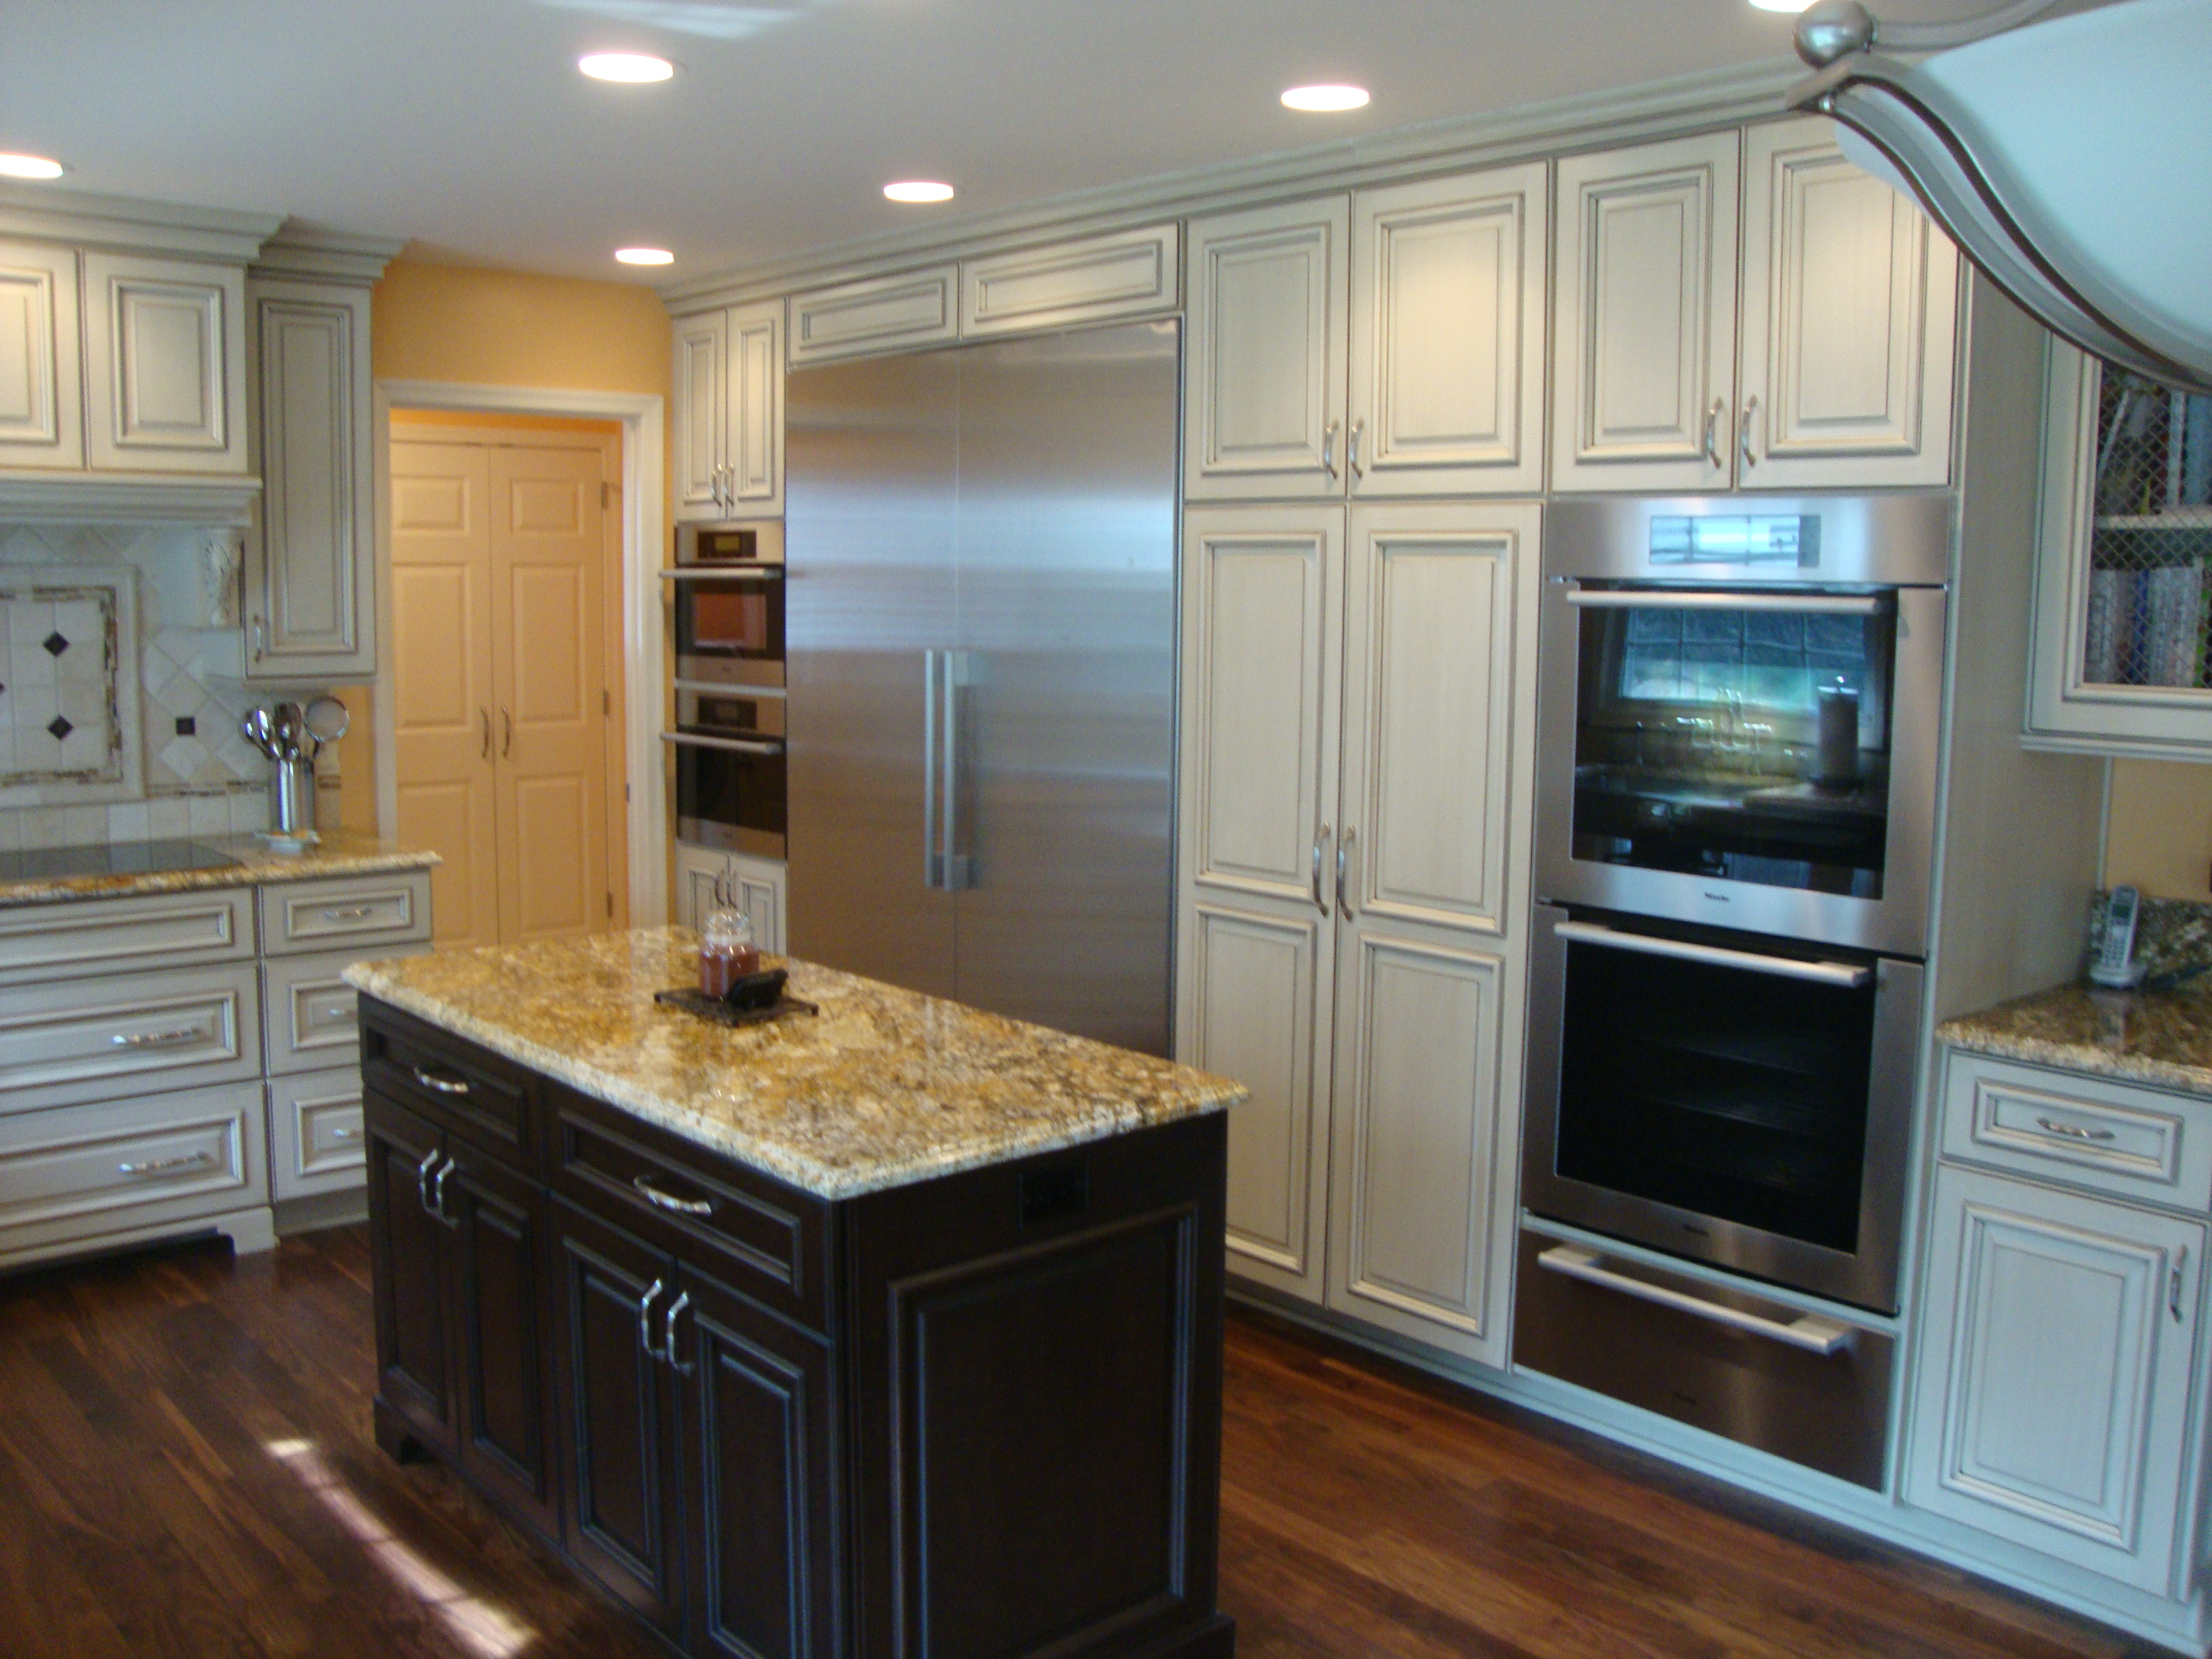 luxury selections affect kitchen remodel price kitchen remodeling miami I